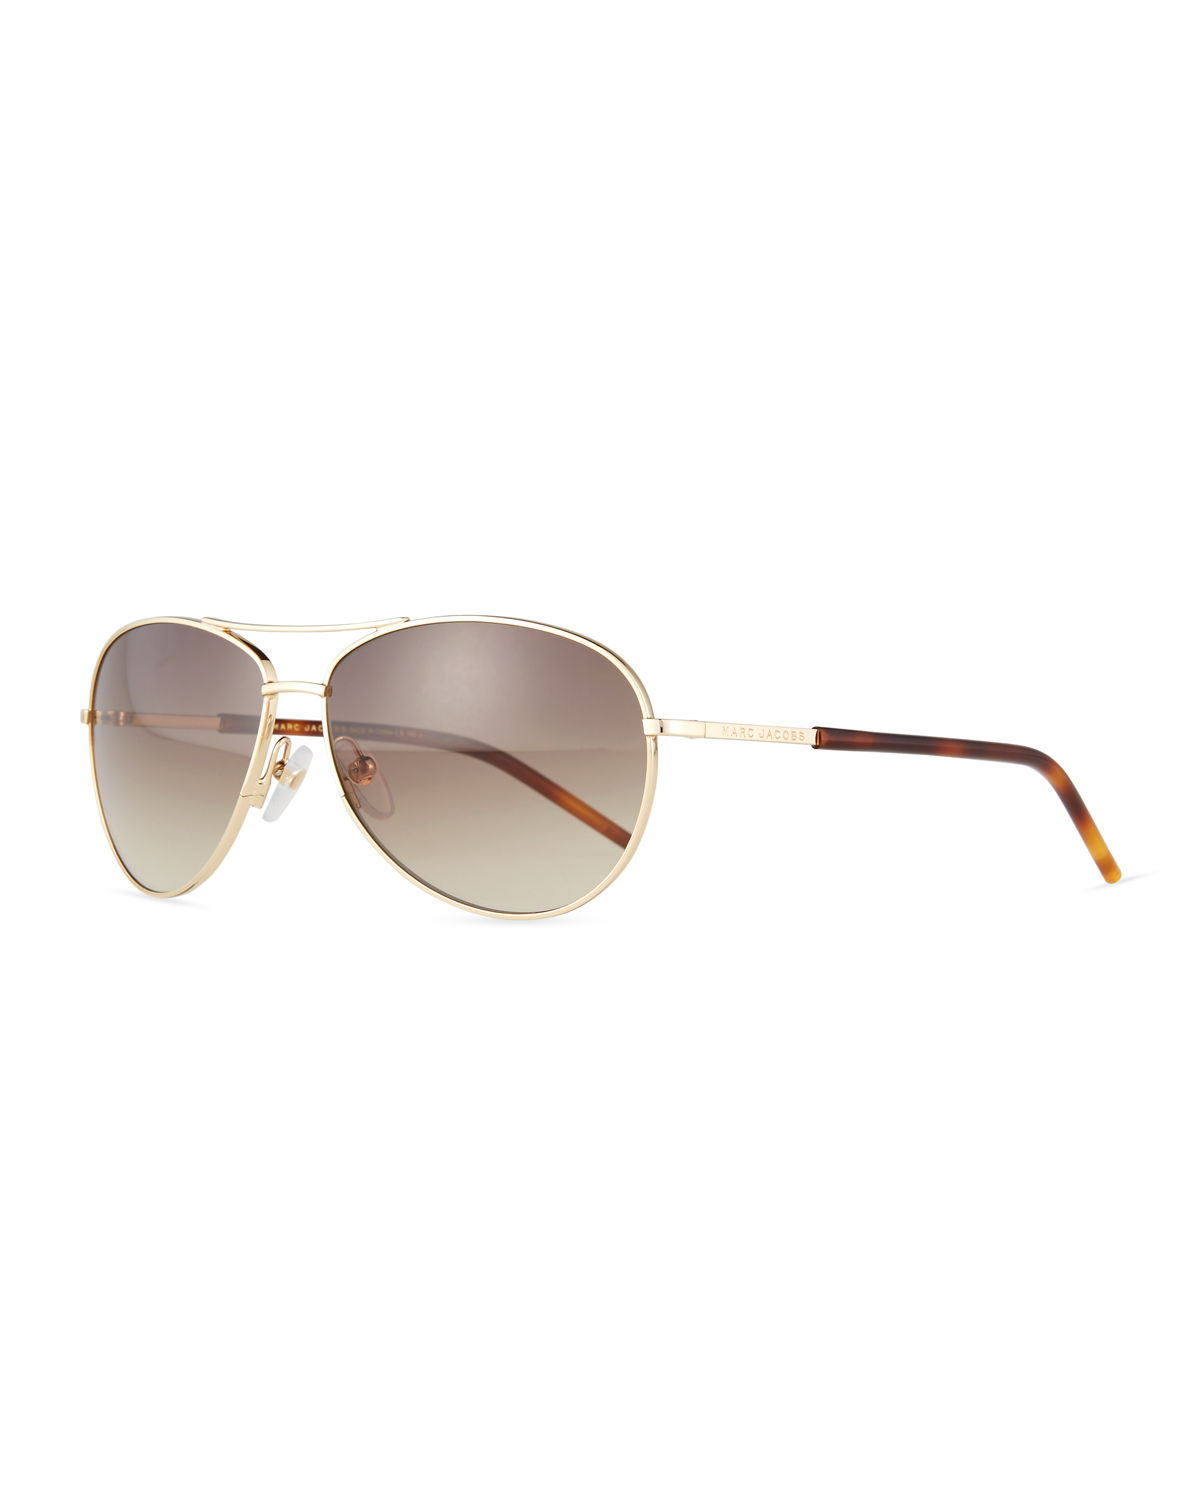 4f4b1d6d1e0 Marc Jacobs Marc 59 Wm4 Jd Gold Copper Aviator Sunglasses